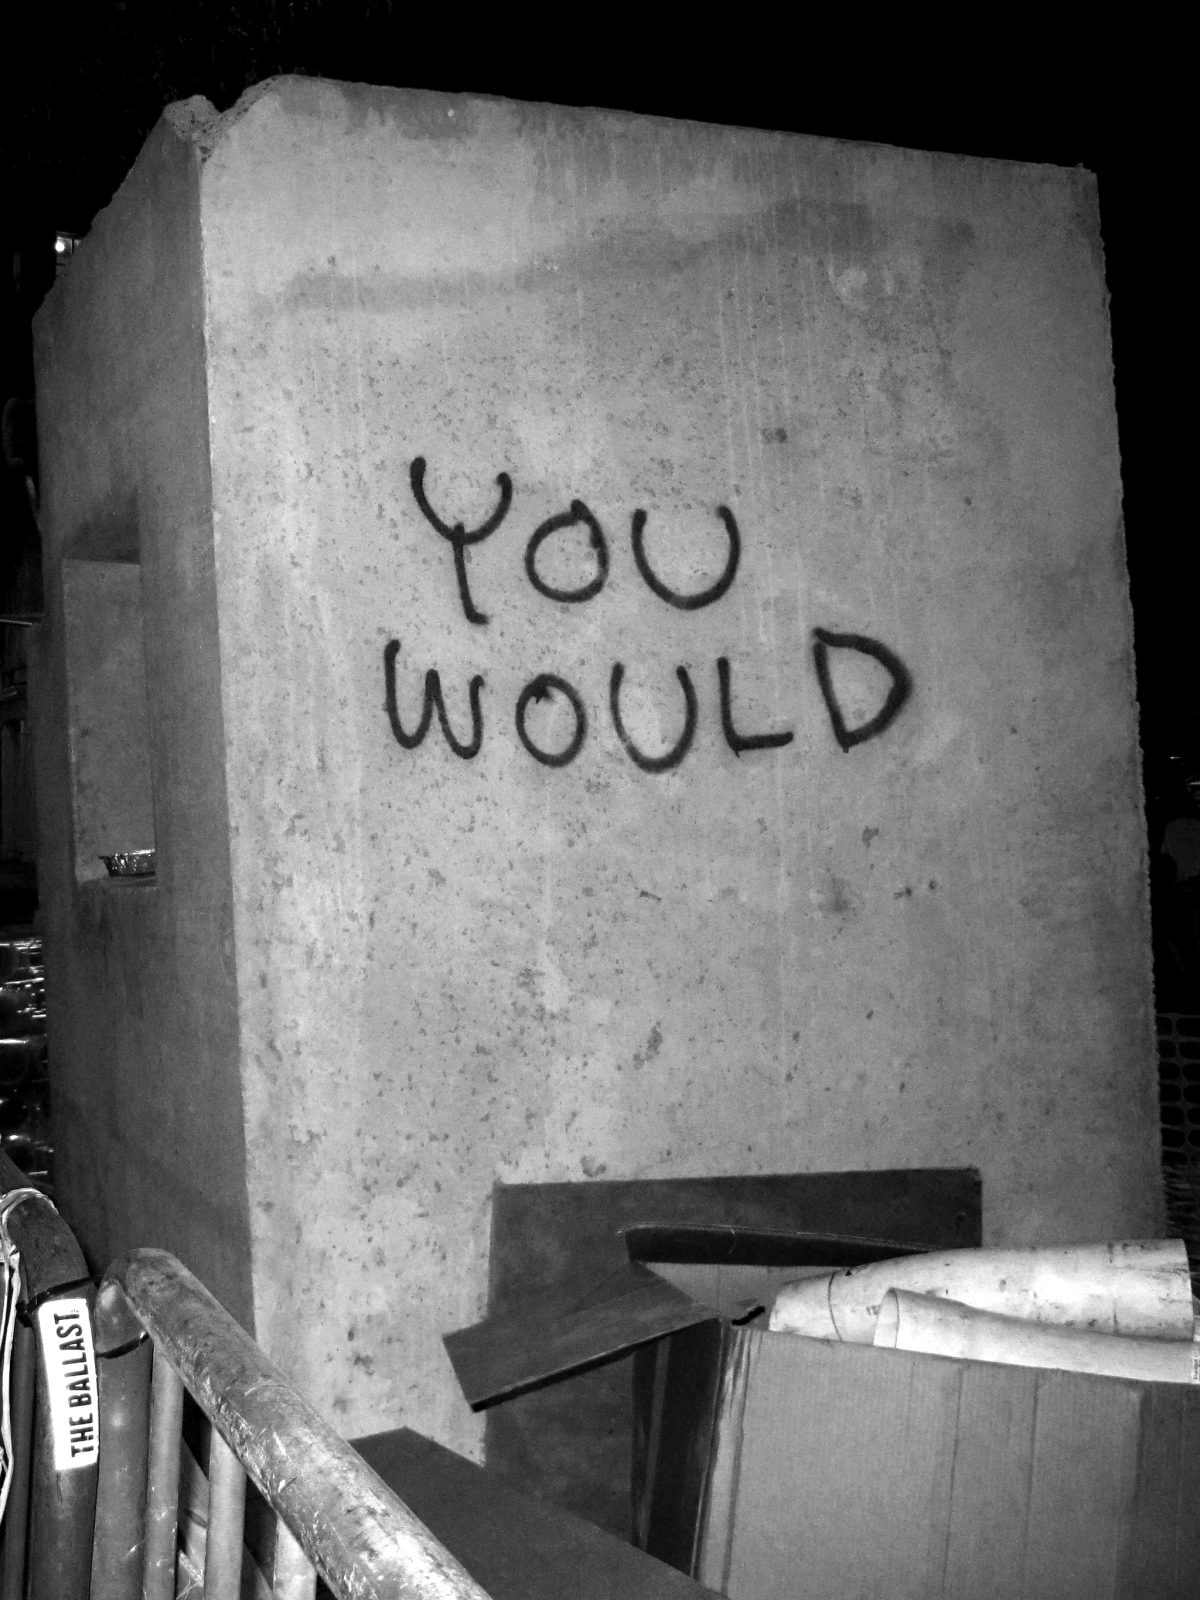 You would – Carl June